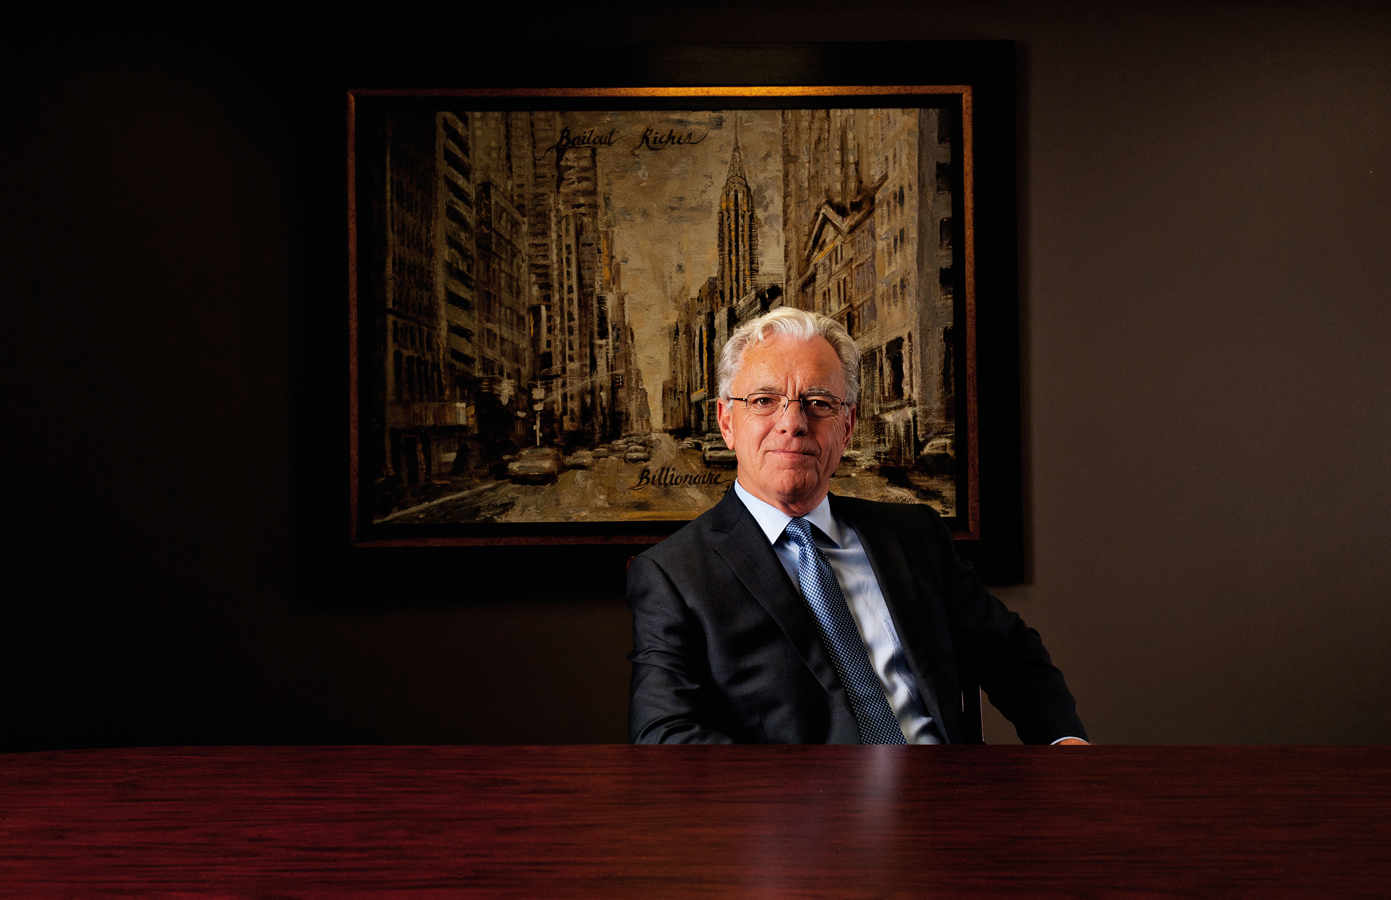 Bill Bartmann poses in a board room while dressed in a suit and tie.   Kenneth M. Ruggiano Tulsa Oklahoma based Photographer